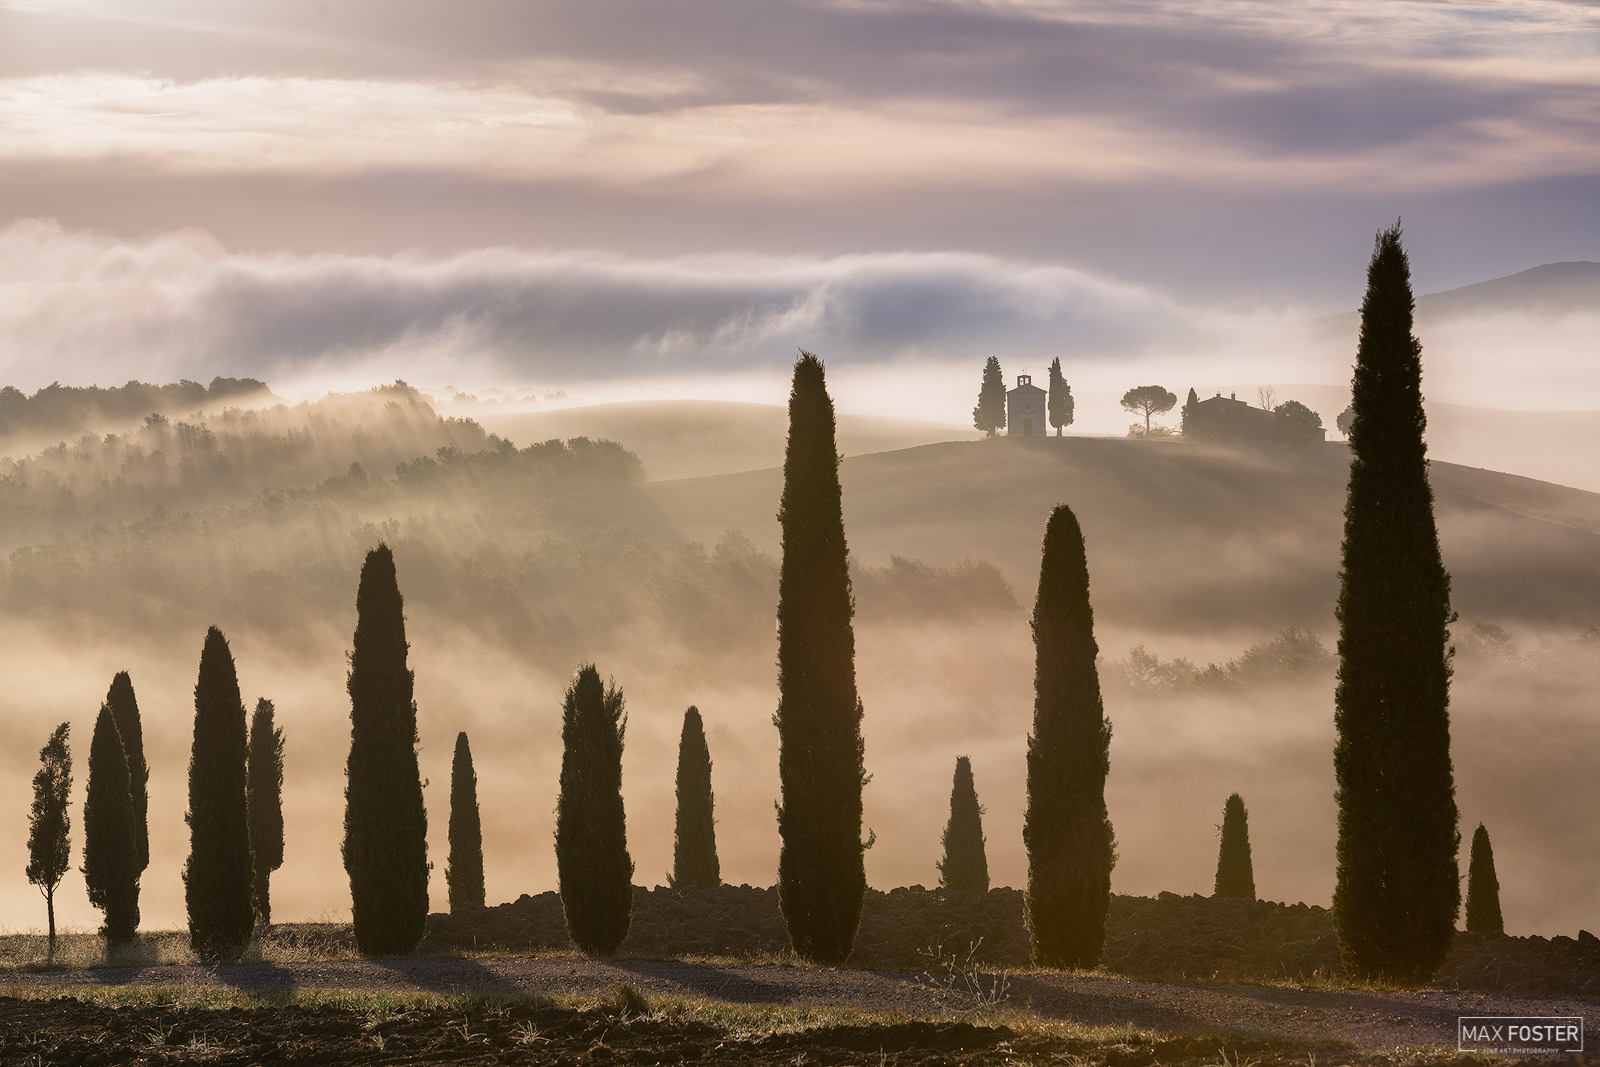 Val d'Orcia, Tuscany, Italy, Tuscan Dream, Tuscan, Dream, Mediterranean Cypress,  Italian Cypress,  Tuscan Cypress, Mediterranean, Cypress, Italian, Trees, photo